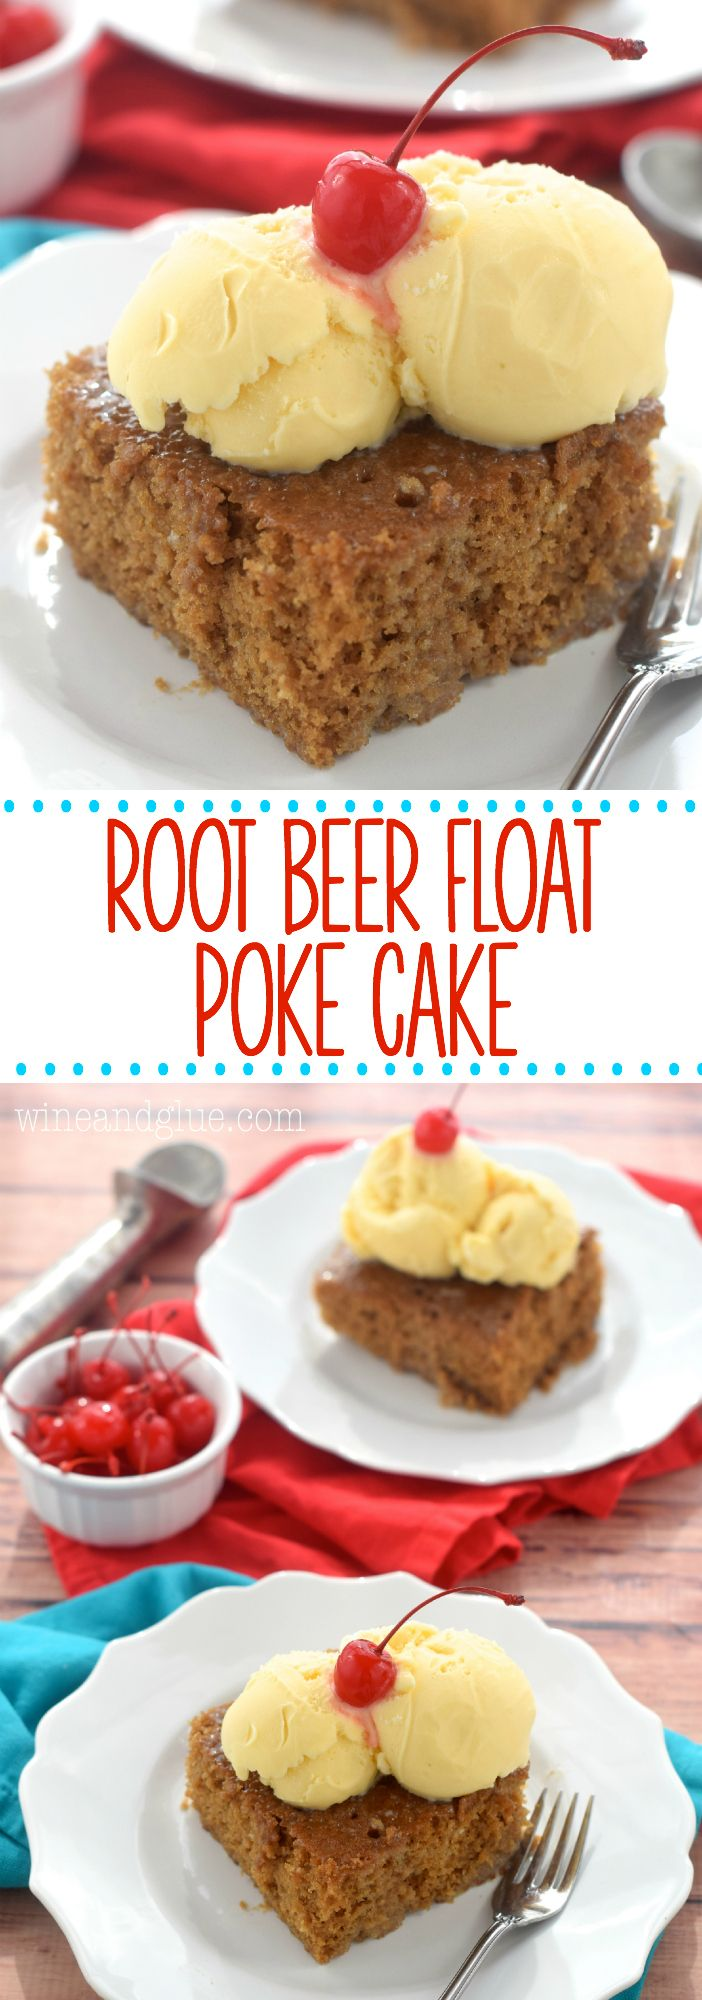 This Root Beer Float Poke Cake is the delicious creamy taste of a root beer float in a poke cake!